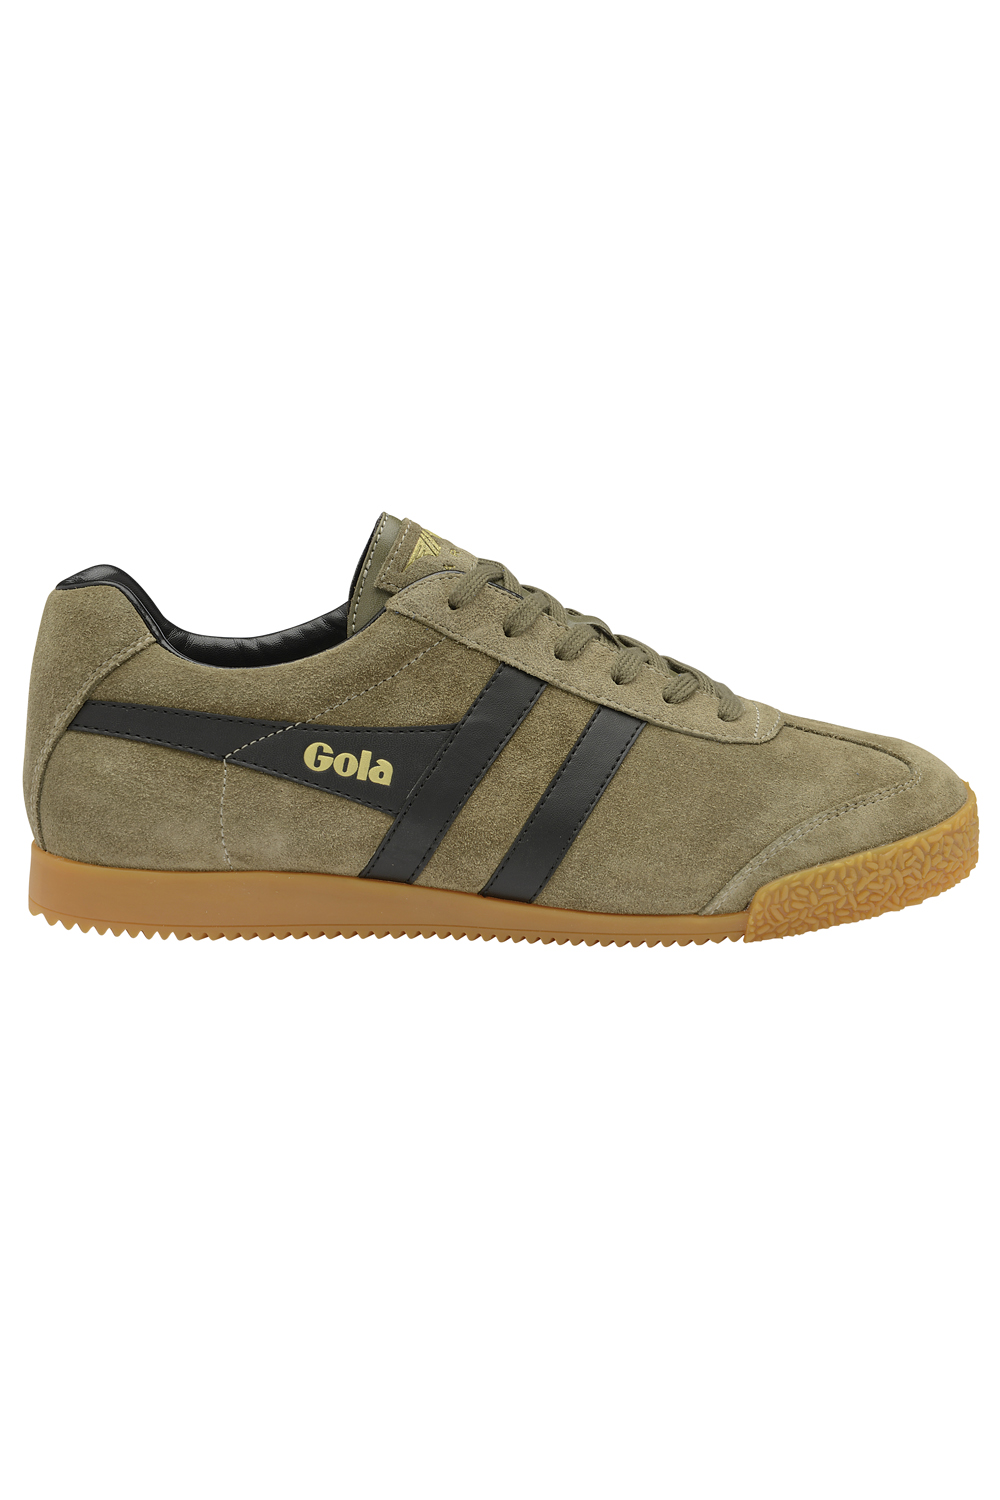 Gola-Harrier-Suede-Classic-Vintage-Lace-Up-Sneakers-Mens-Trainers-Low-Top-Shoes thumbnail 7